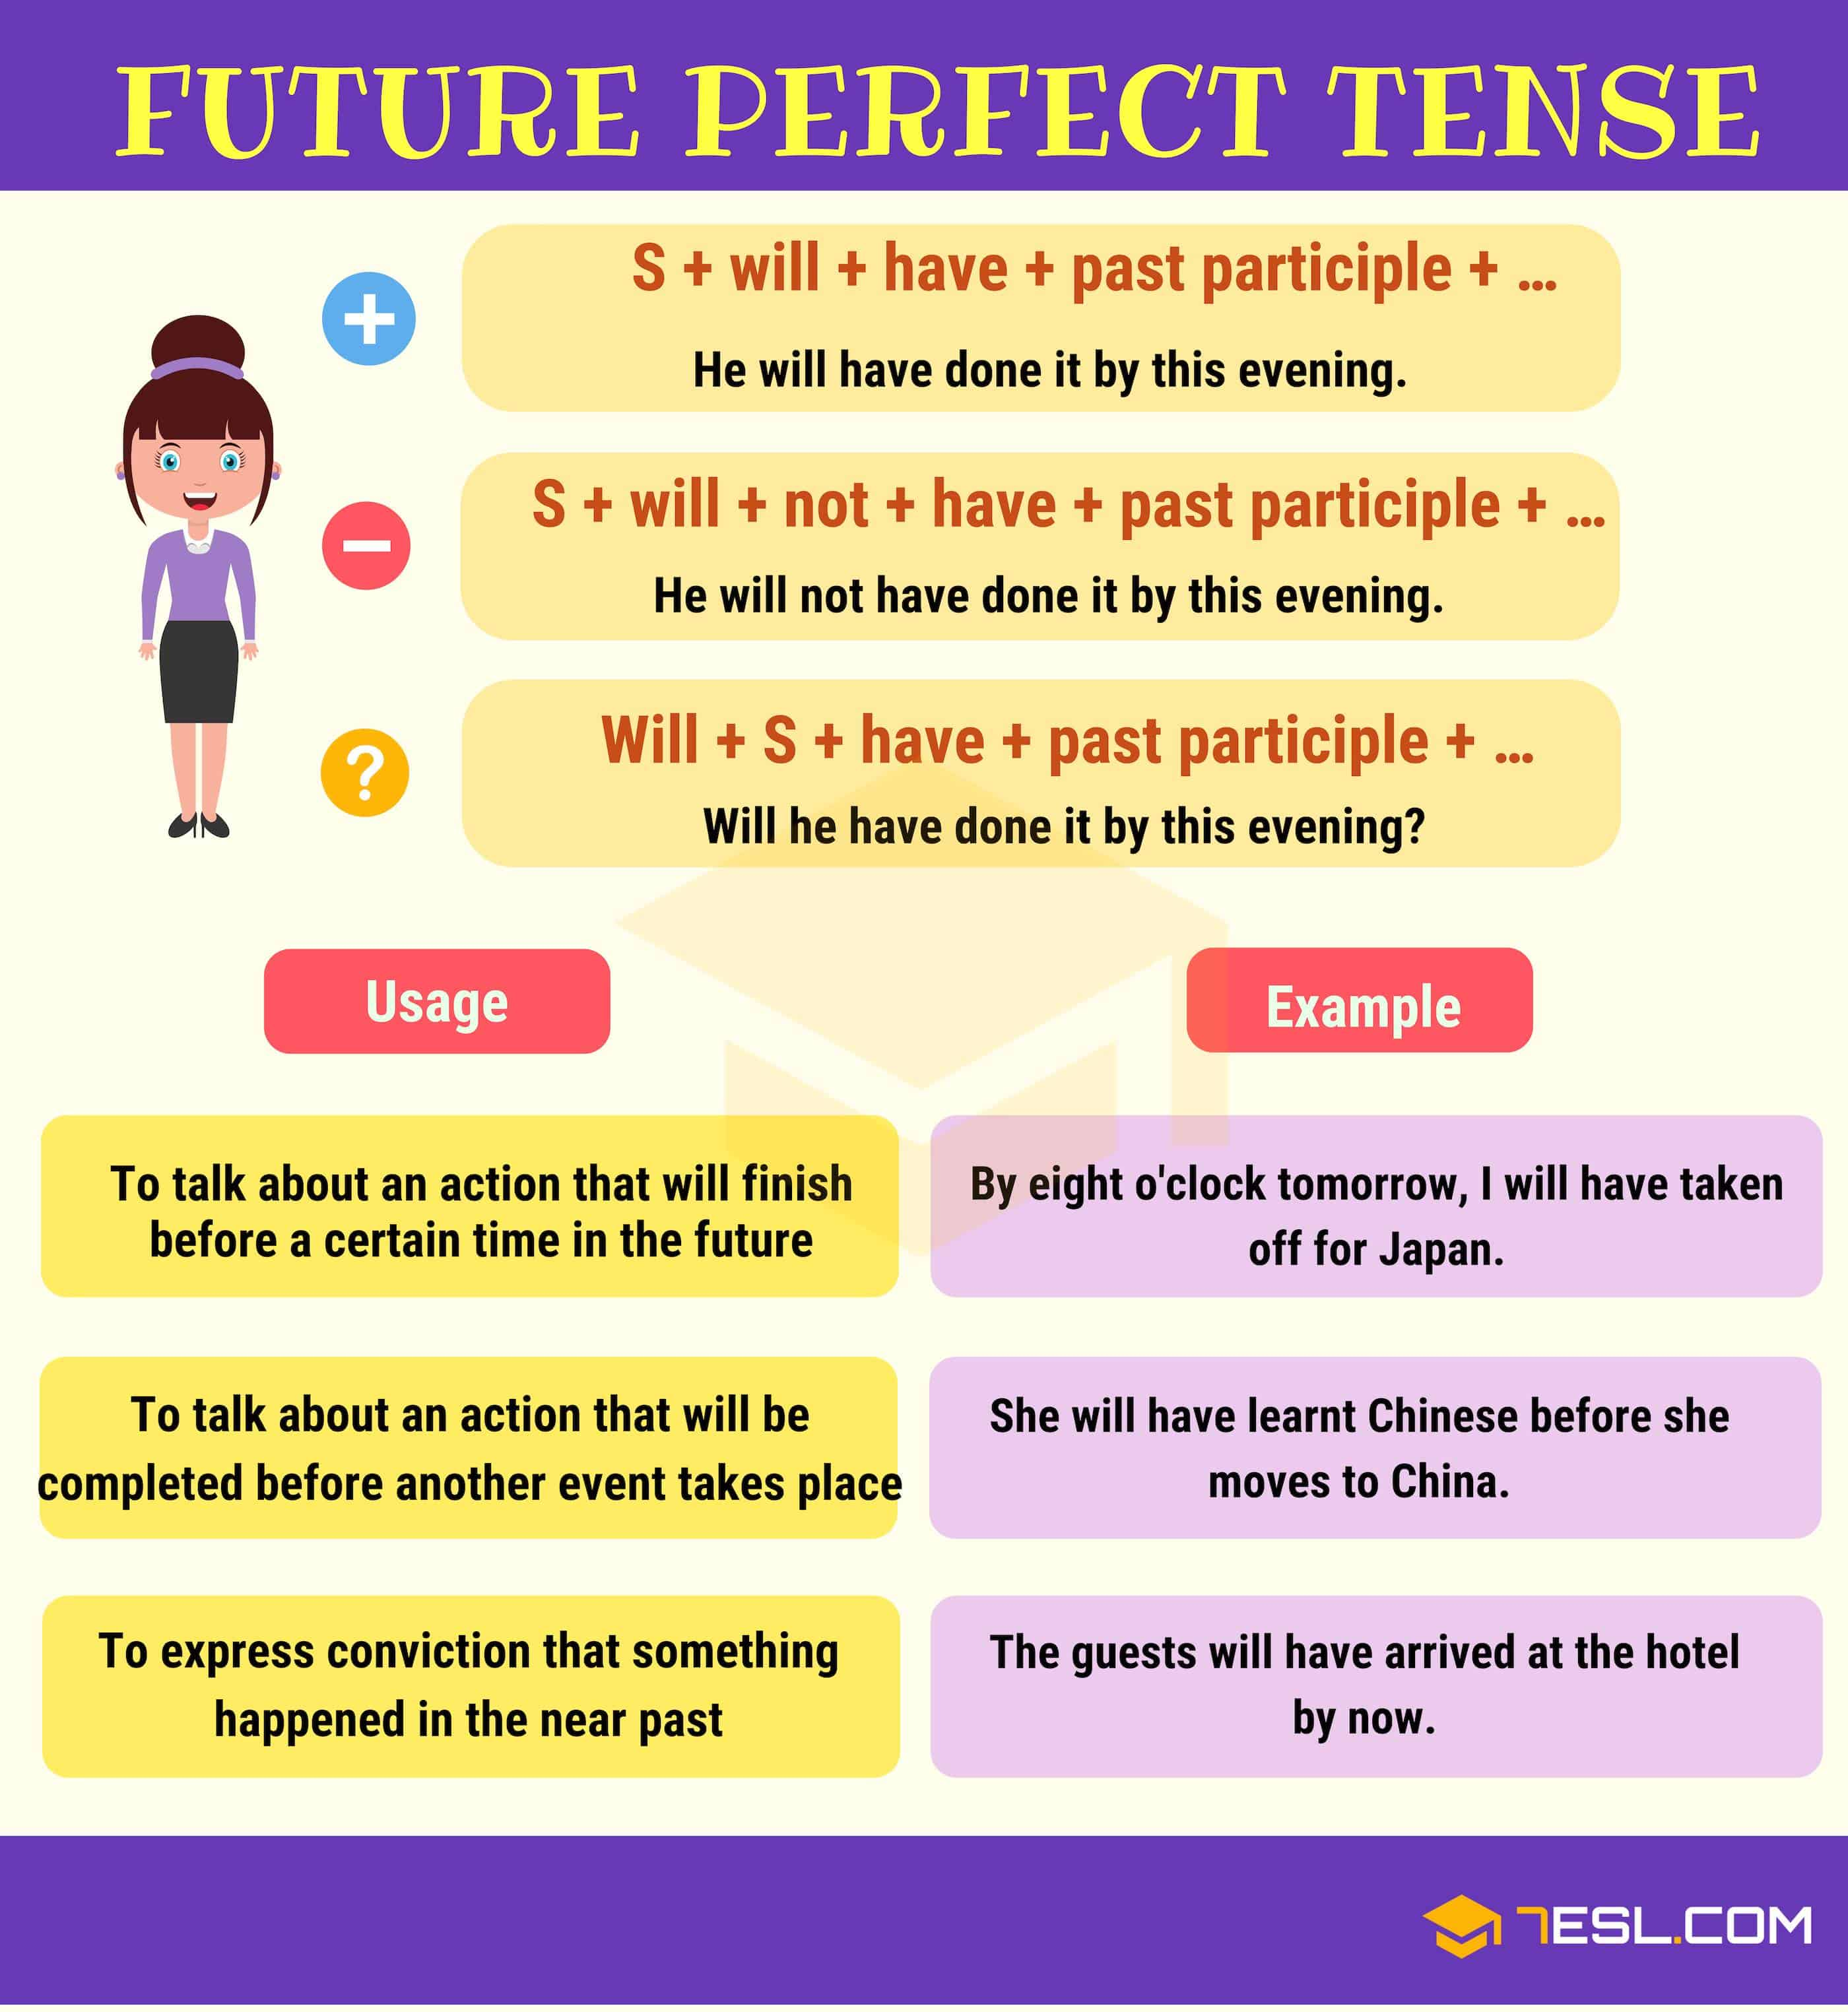 future perfect tense useful rules and examples 7 e s l. Black Bedroom Furniture Sets. Home Design Ideas